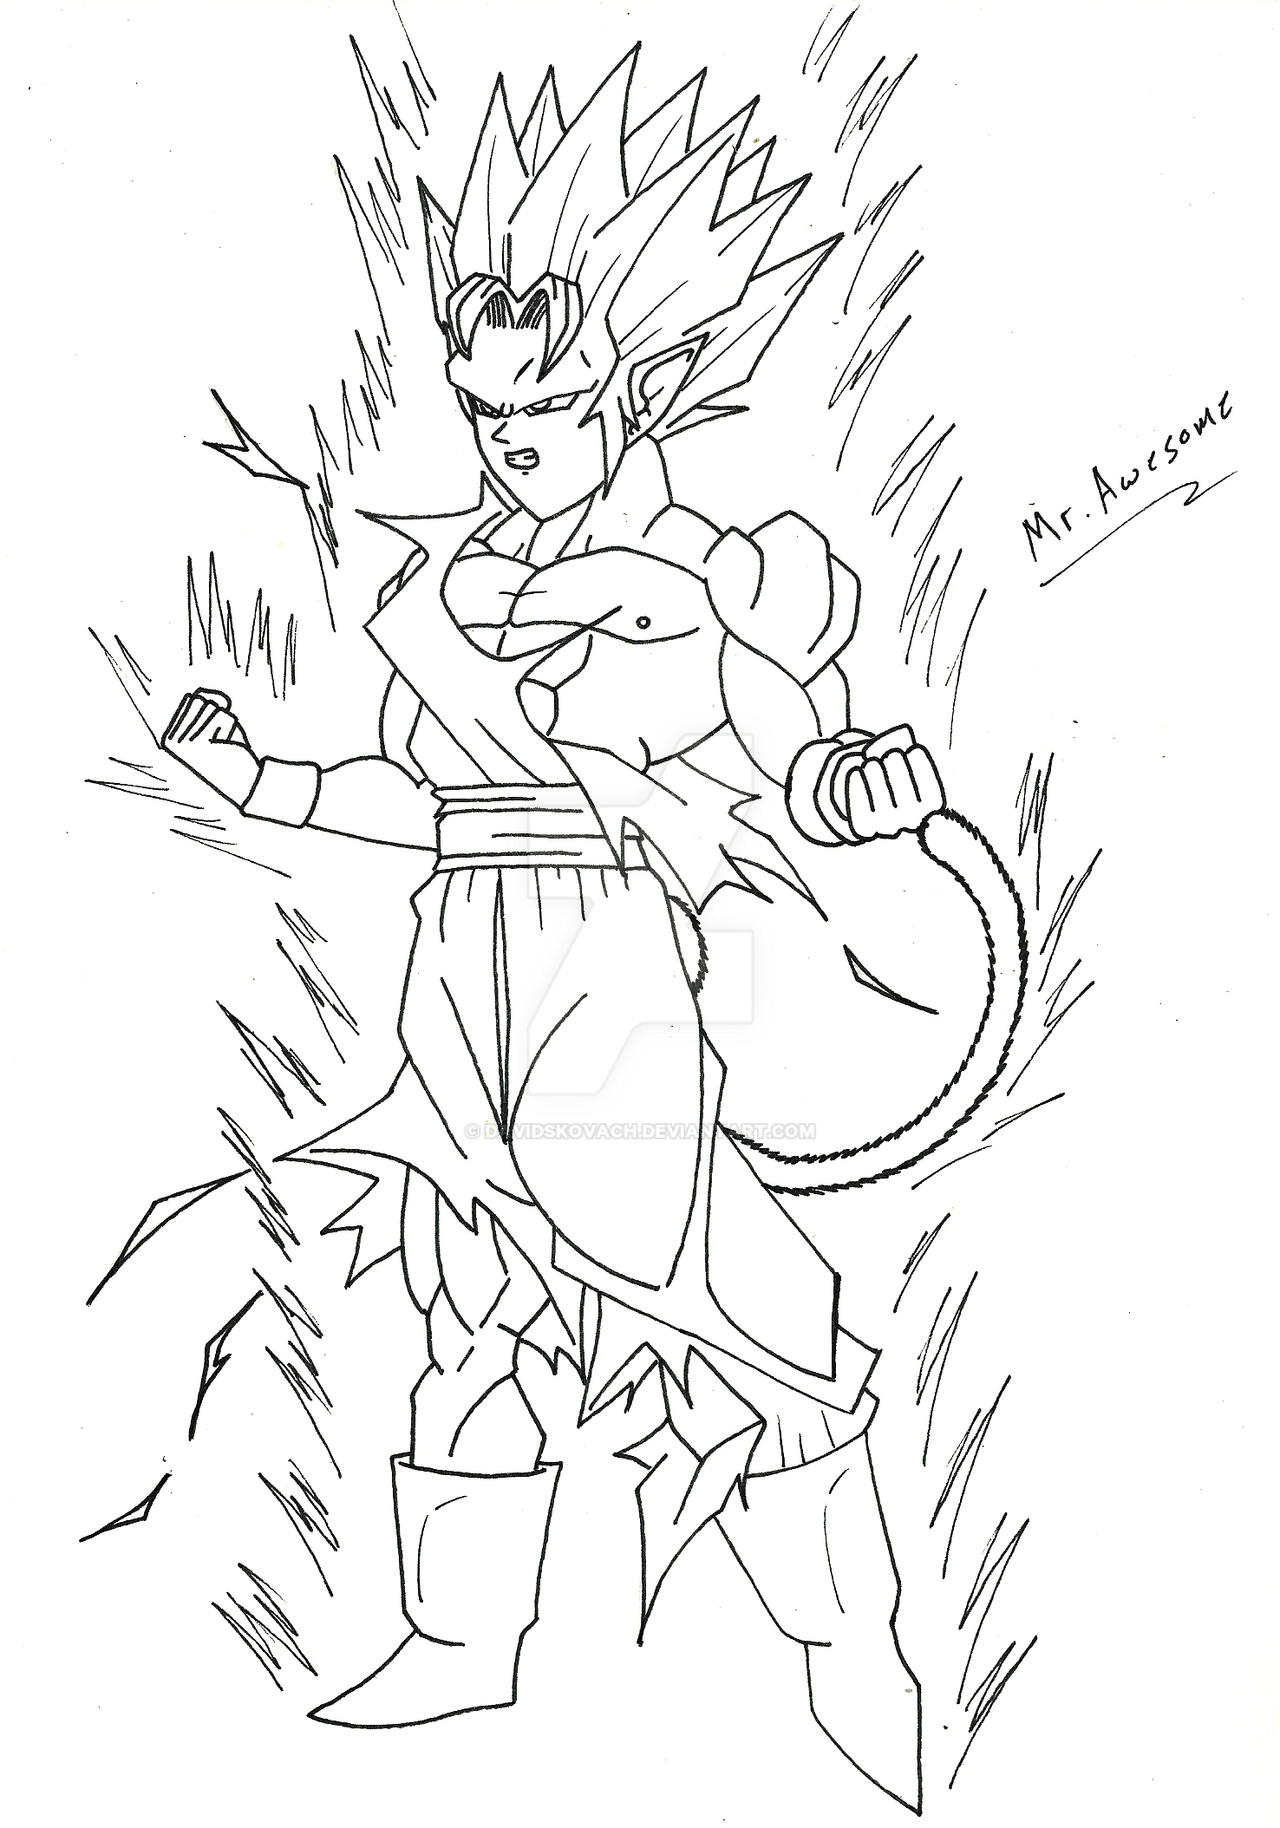 Torock True Super Saiyan Line Art by DavidsKovach